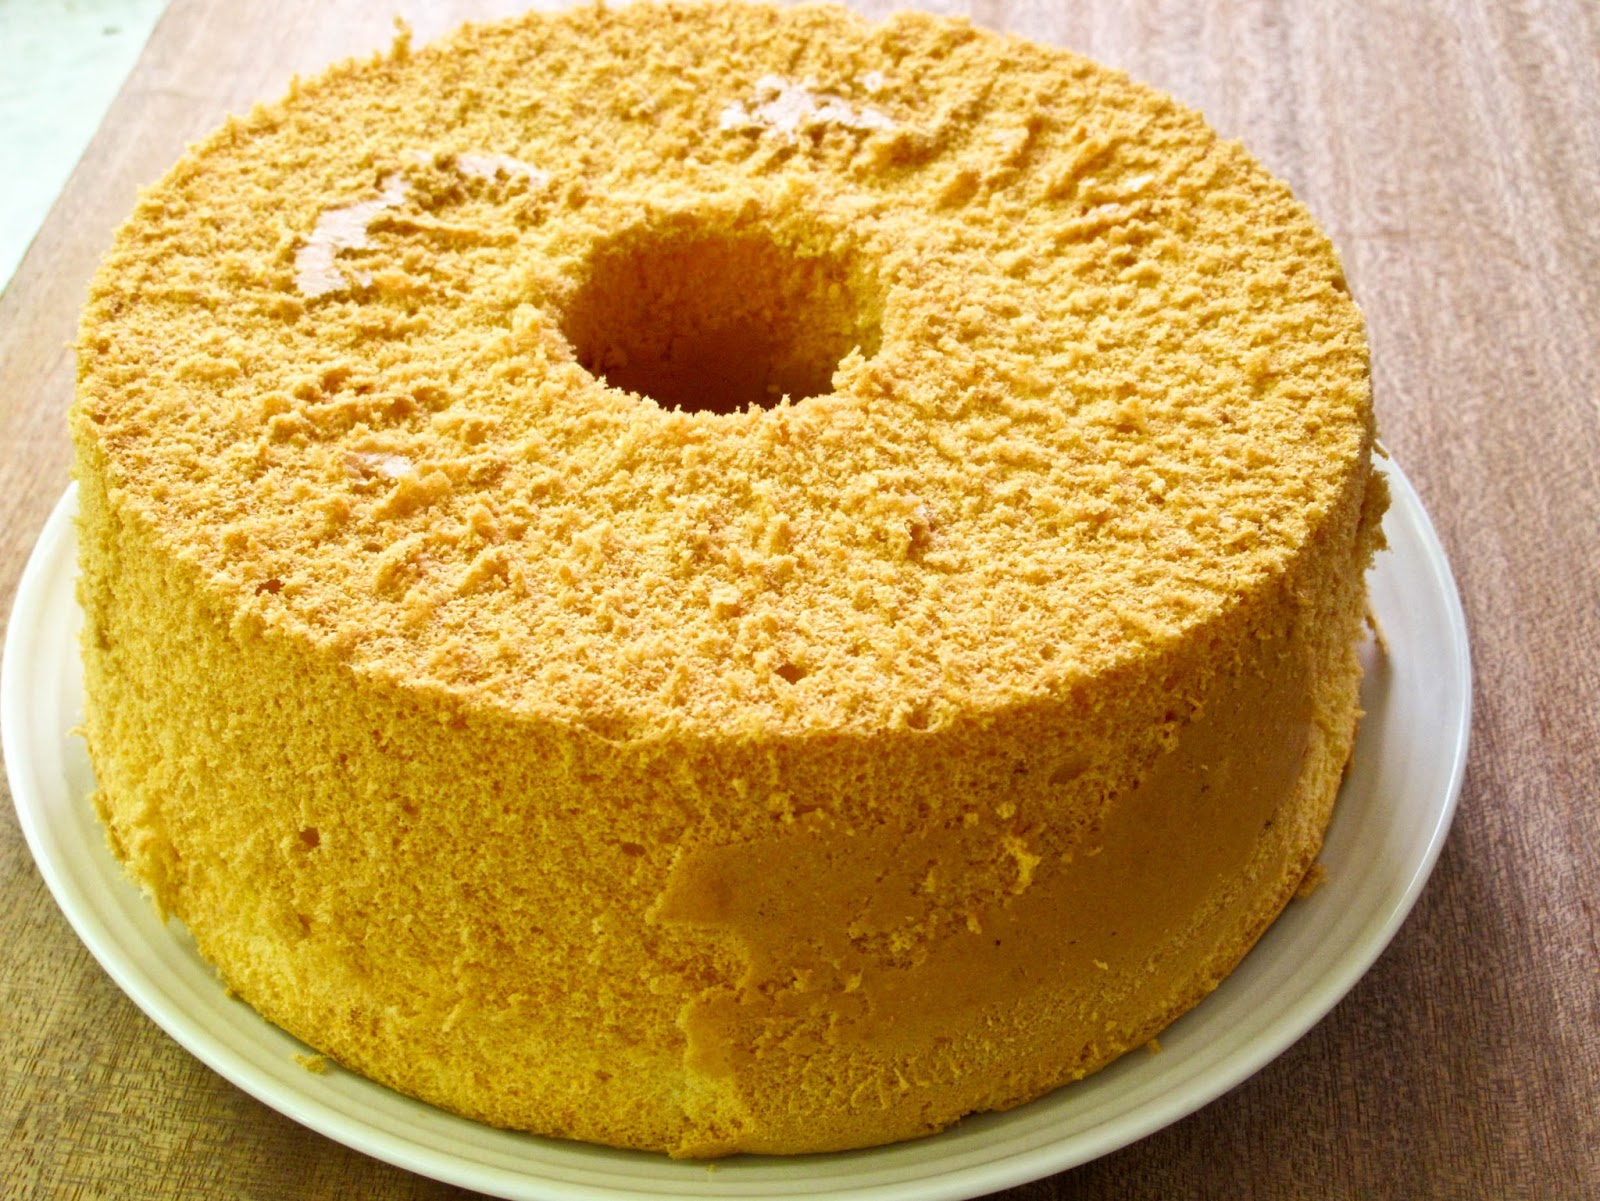 Simple Menu: Lemon Chiffon Cake